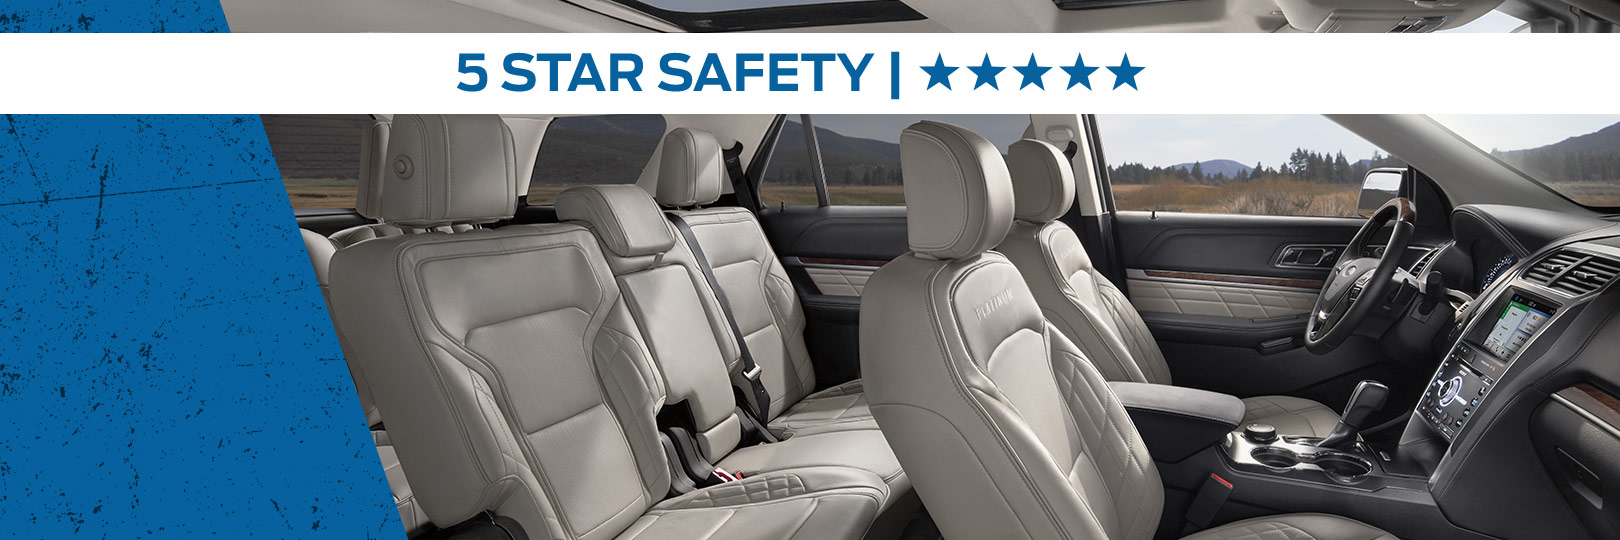 Safety features and interior of the 2018 Ford Explorer - available at Al Packer's White Marsh Ford near Baltimore, MD and Towson, MD